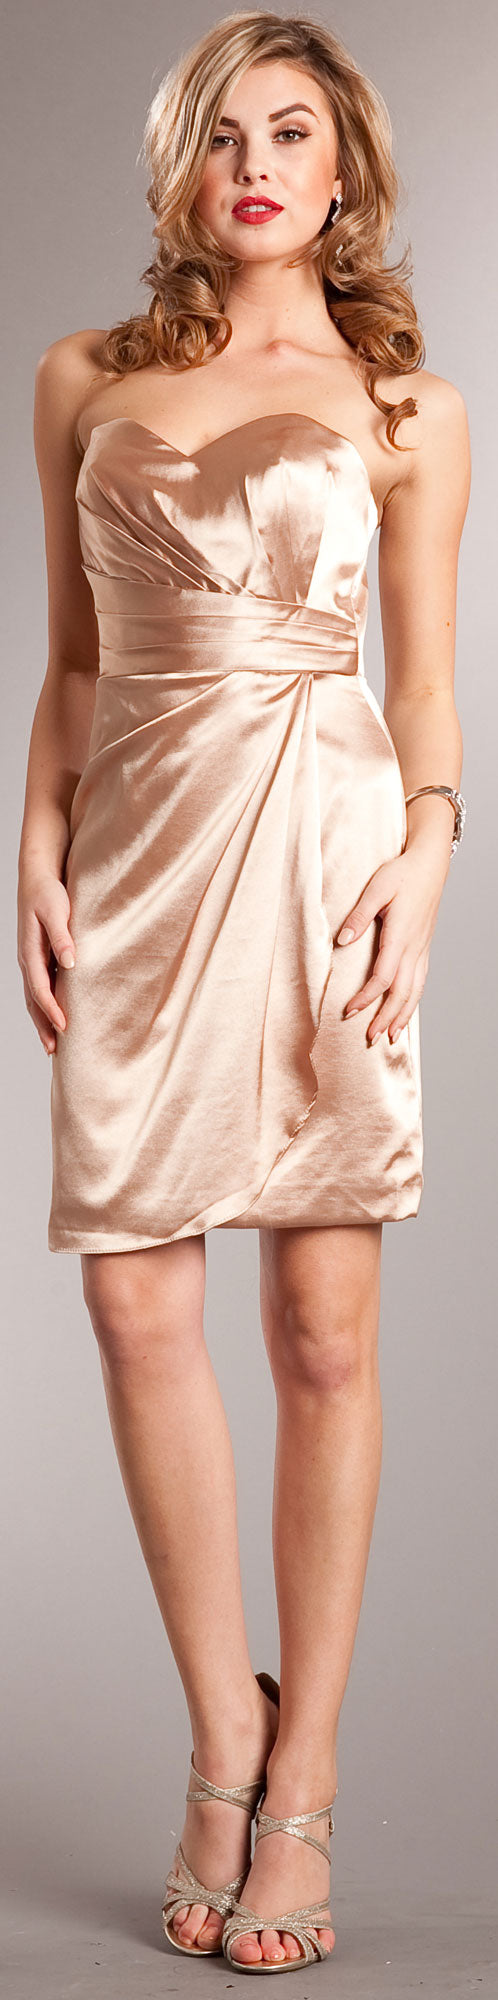 Main image of Strapless Wrap Around Short Bridesmaid Party Dress